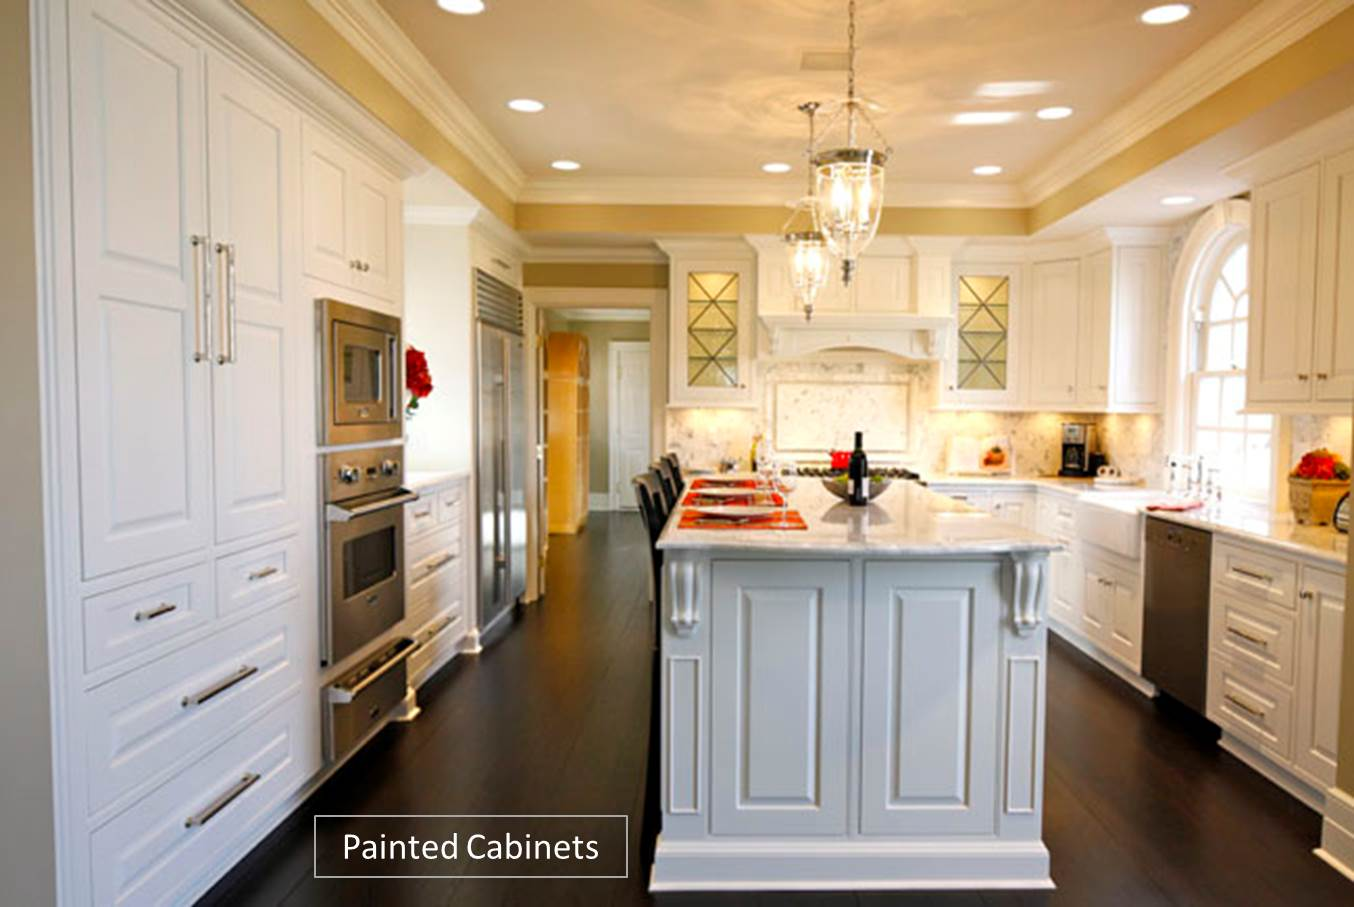 Custom kitchen cabinets painted vs stained for Kitchen cabinets painted